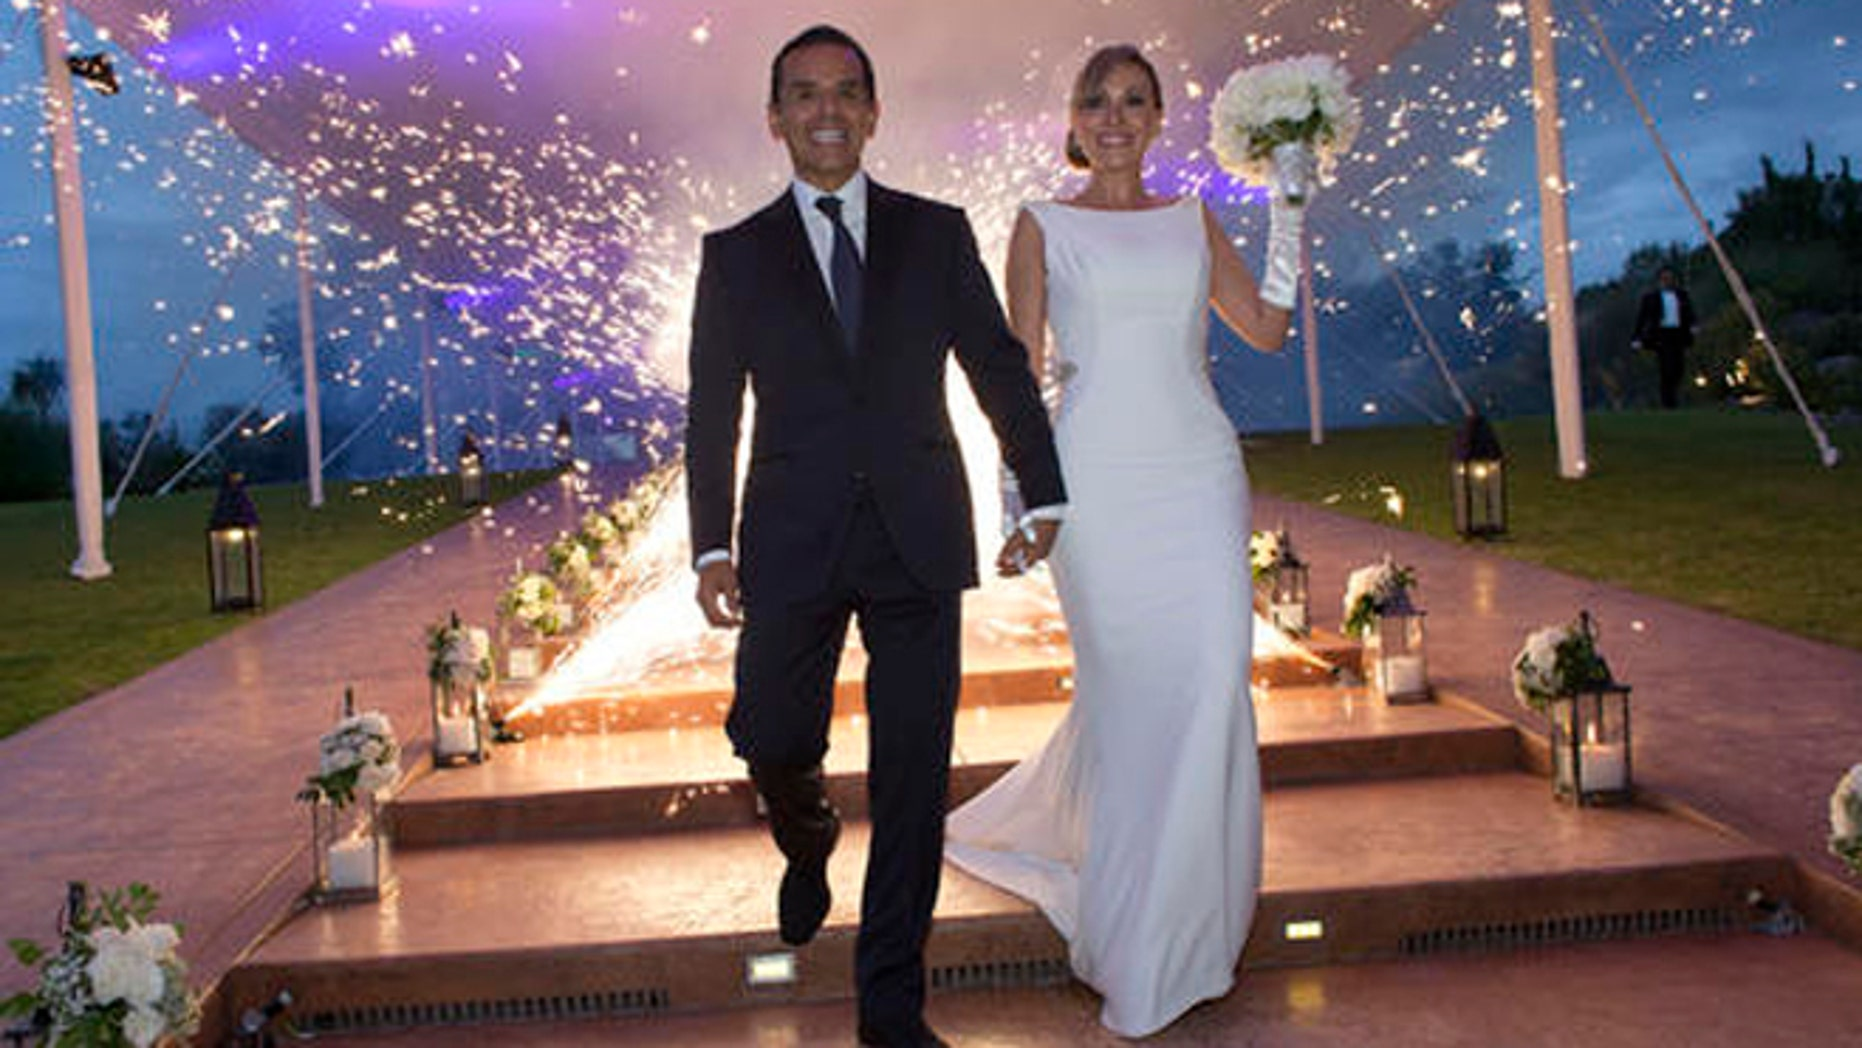 This Saturday, Aug. 6, 2016 photo shows former Mayor of Los Angeles Antonio Villaraigosa during his wedding to Patricia Govea at a private ceremony and reception in San Miguel de Allende, Mexico. Villaraigosa, a potential candidate for governor, tied the knot with Govea in a ceremony in central Mexico, with about 100 friends and family in attendance. (Armando Arorizo/WeddingVignette.com via AP)